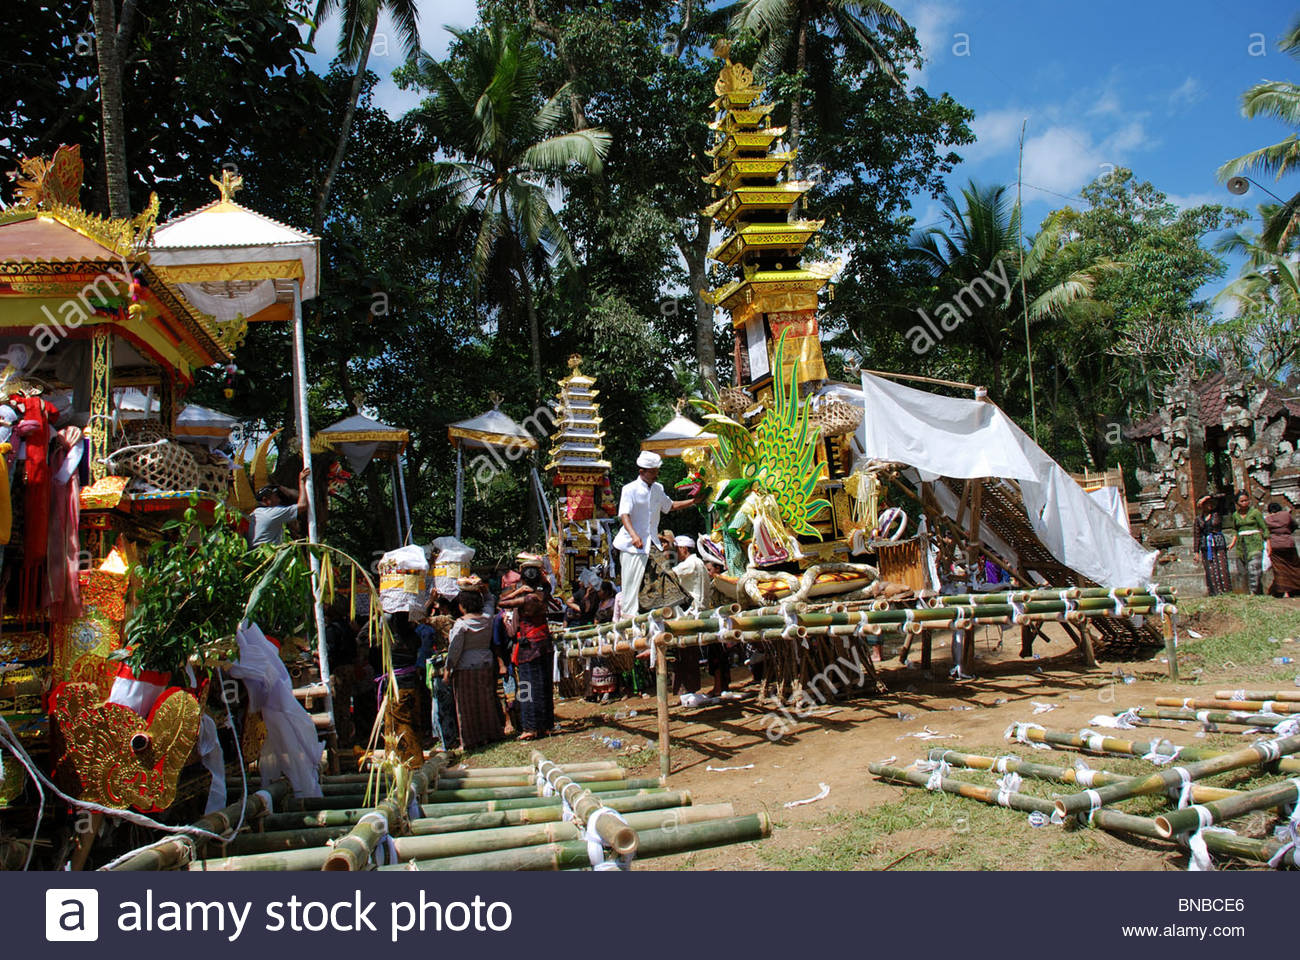 Ornate funeral biers and coffins at a mass Hindu cremation ceremony women carry offerings on their heads Bangli - Stock Image